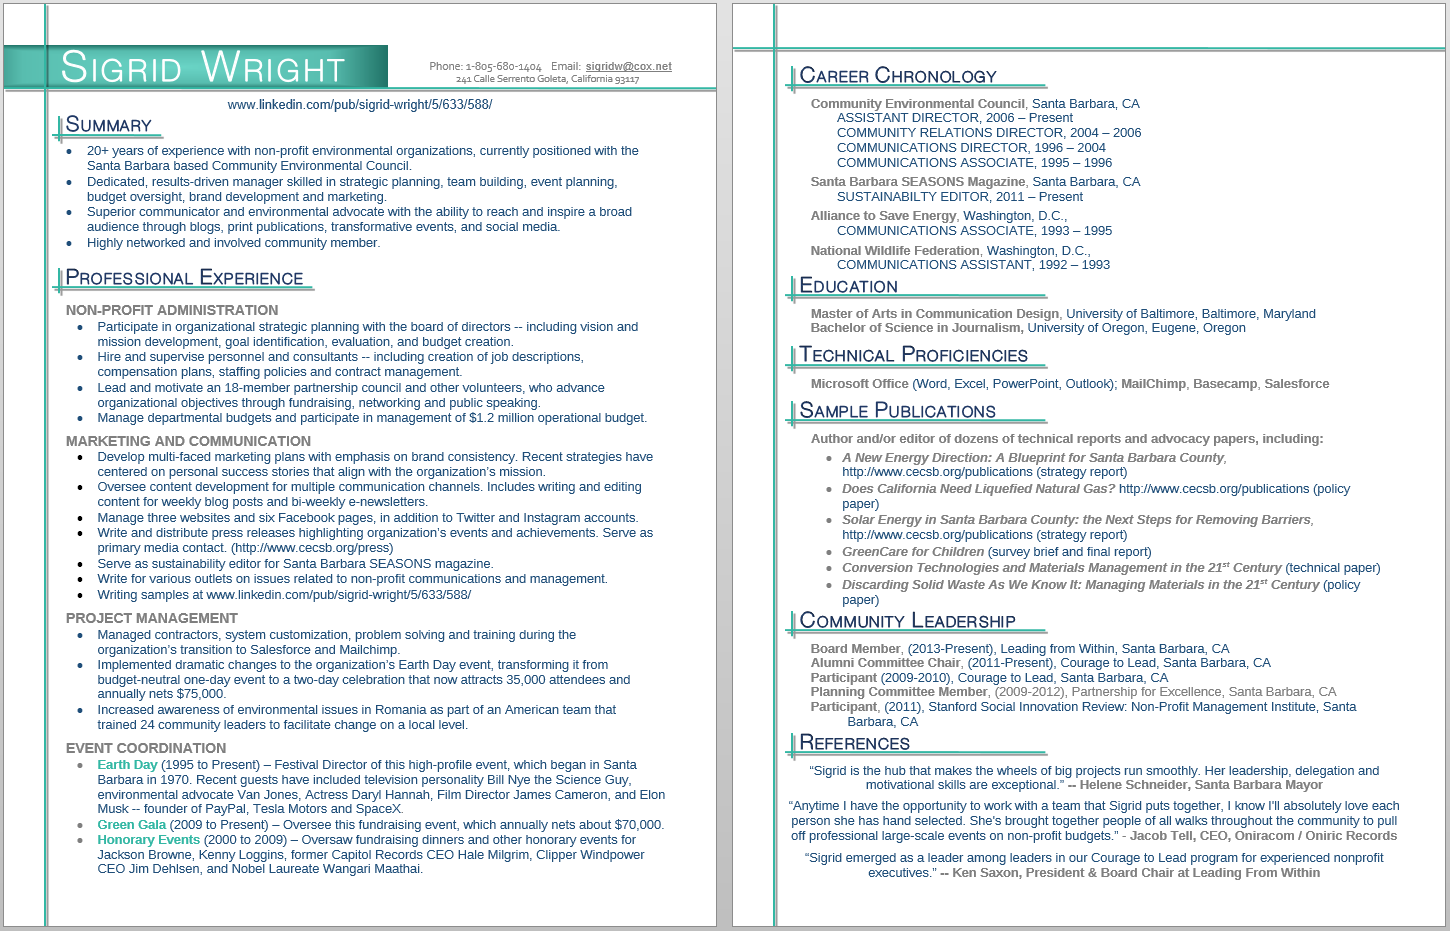 Economical, Serious, Communications Resume Design for a Company by ...